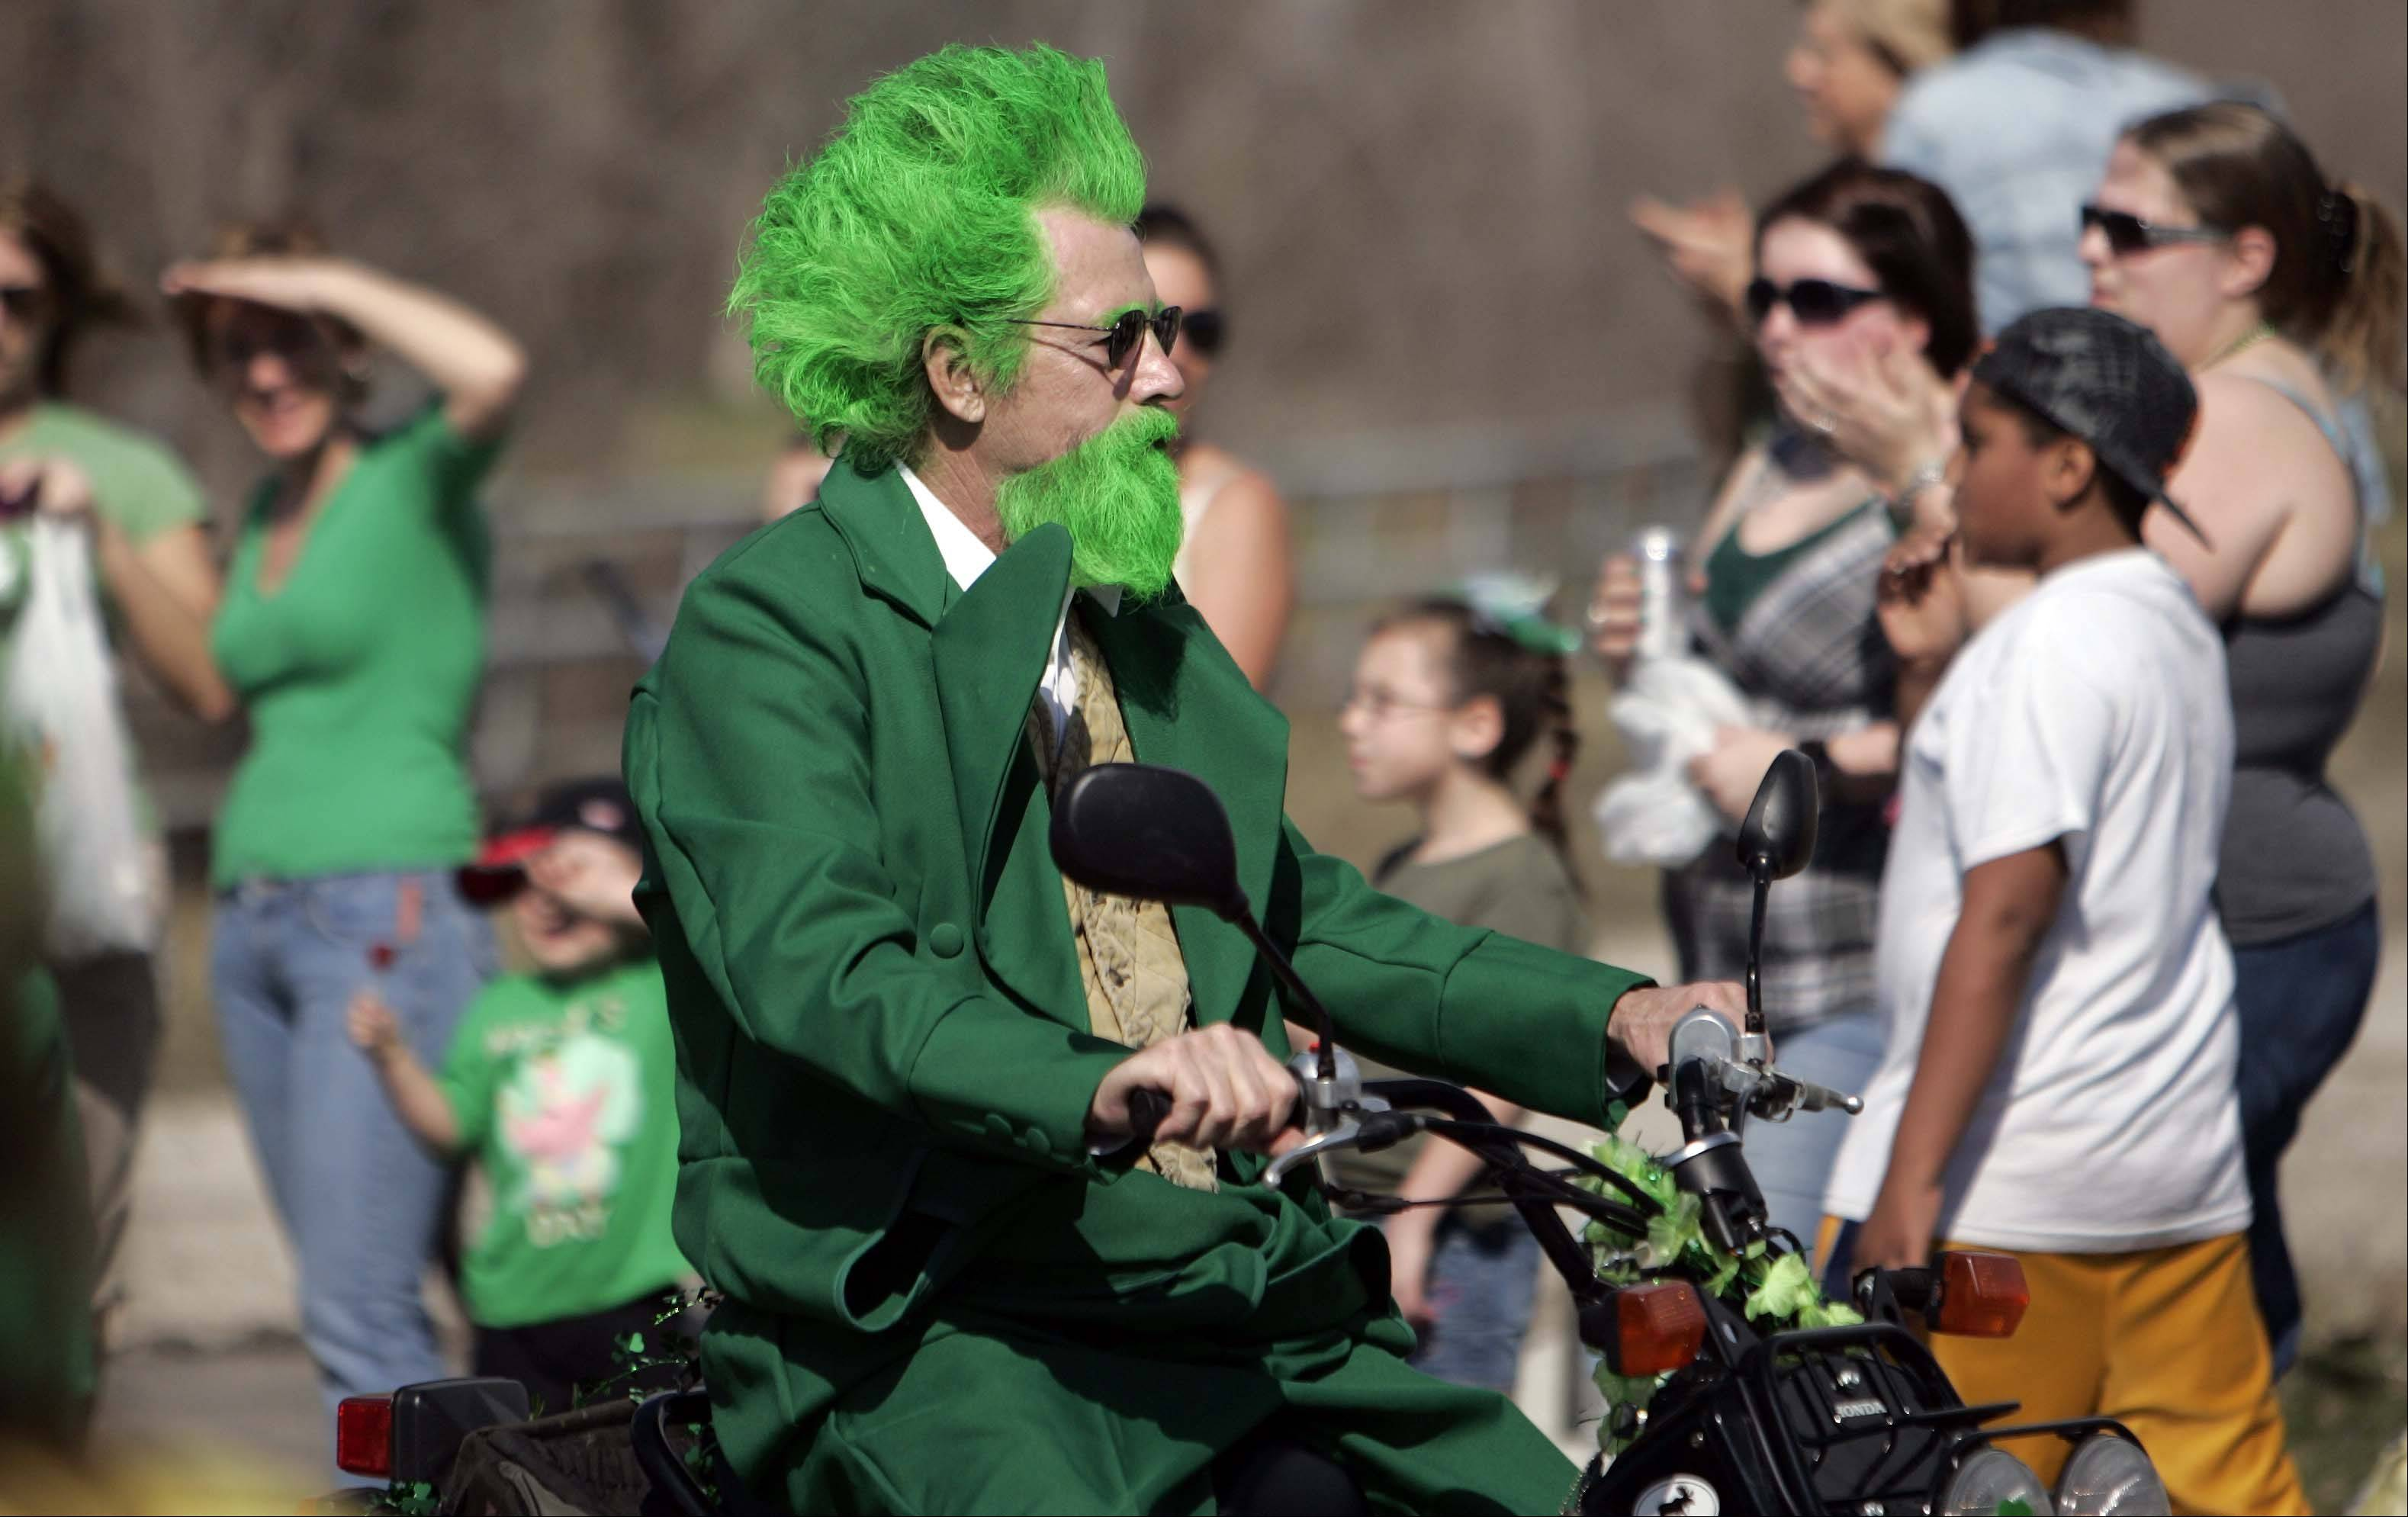 With a green suit to match his bright green hair Kevin Combest rides thru the Thom McNamee Memorial St. Patrick's Day Parade in East Dundee March 17, 2012.